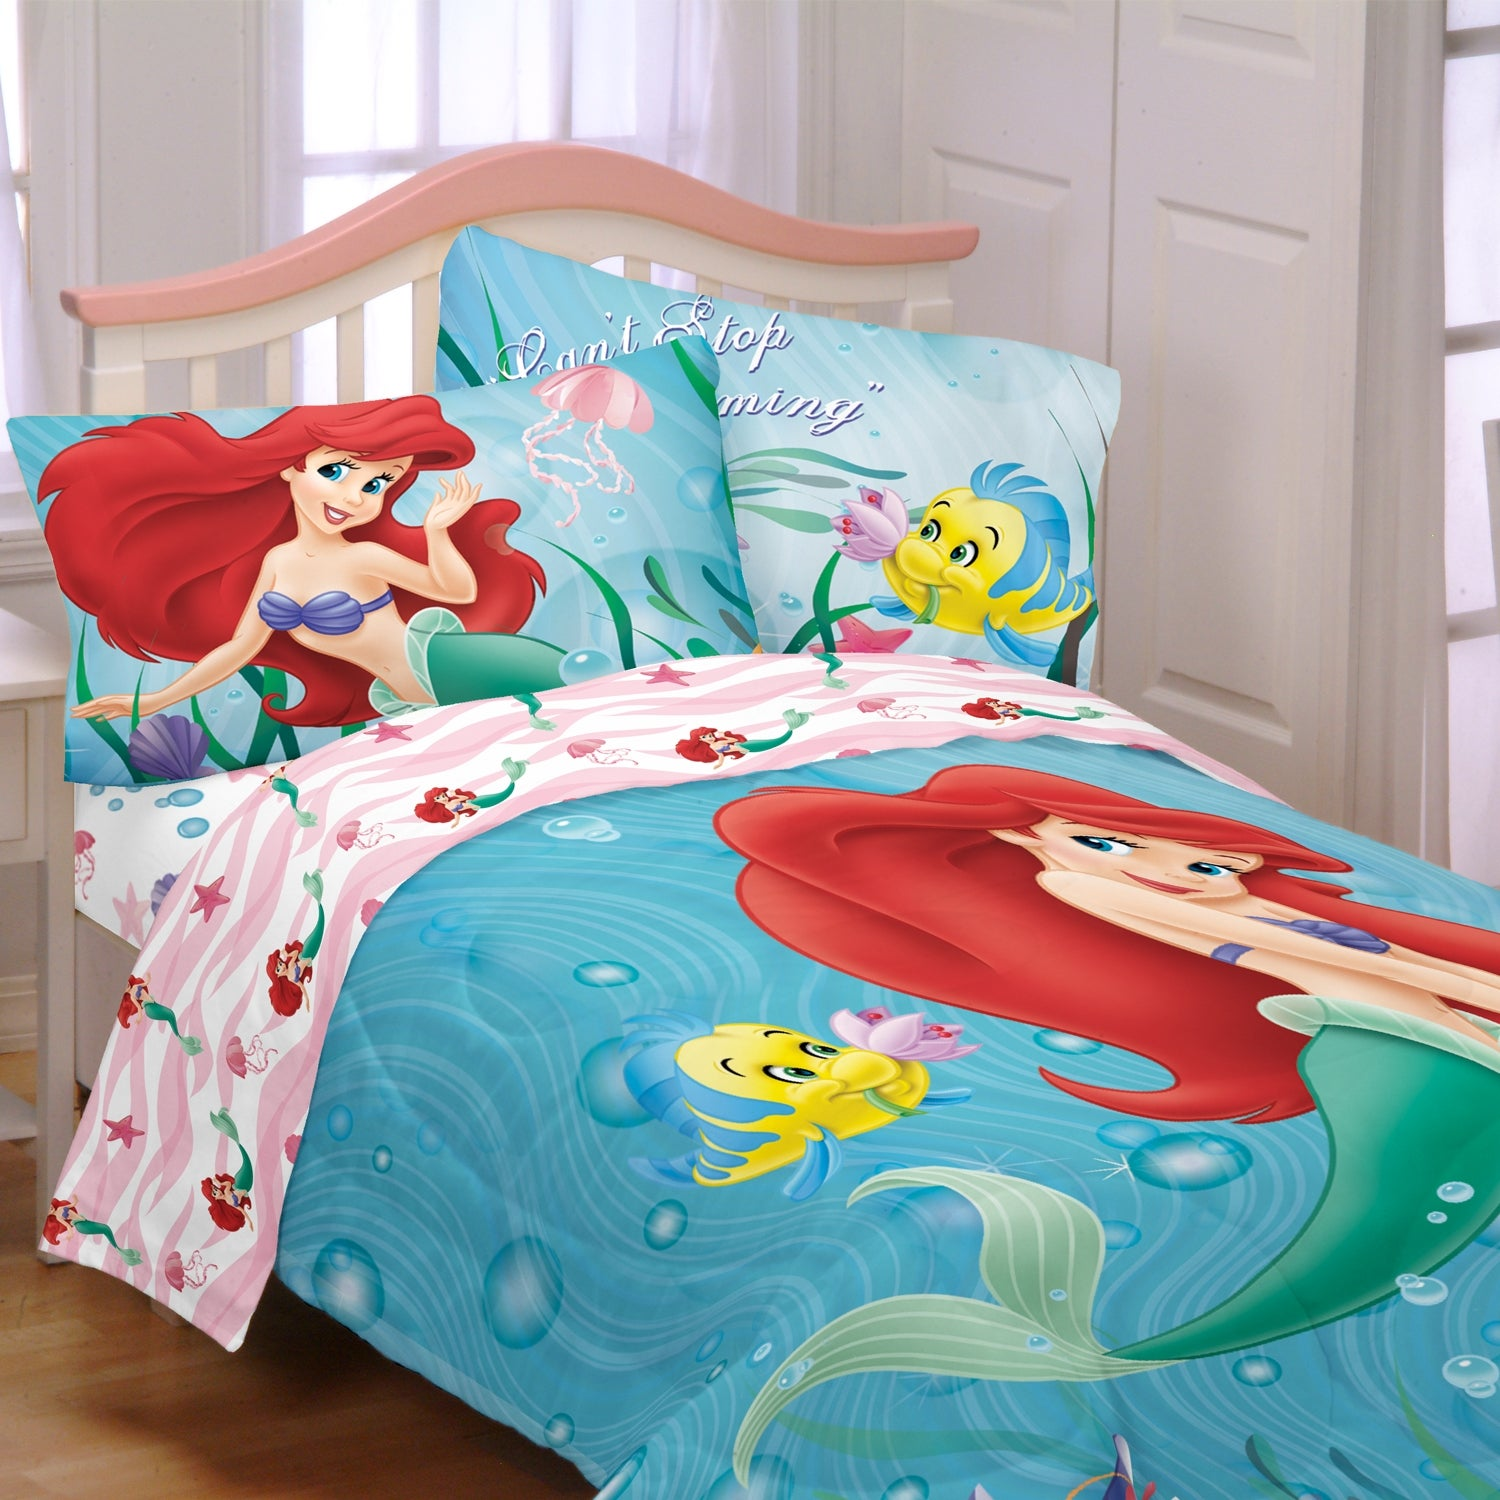 Disney Little Mermaid \'Sea Friends\' 4-piece Bed in a Bag with Sheet Set